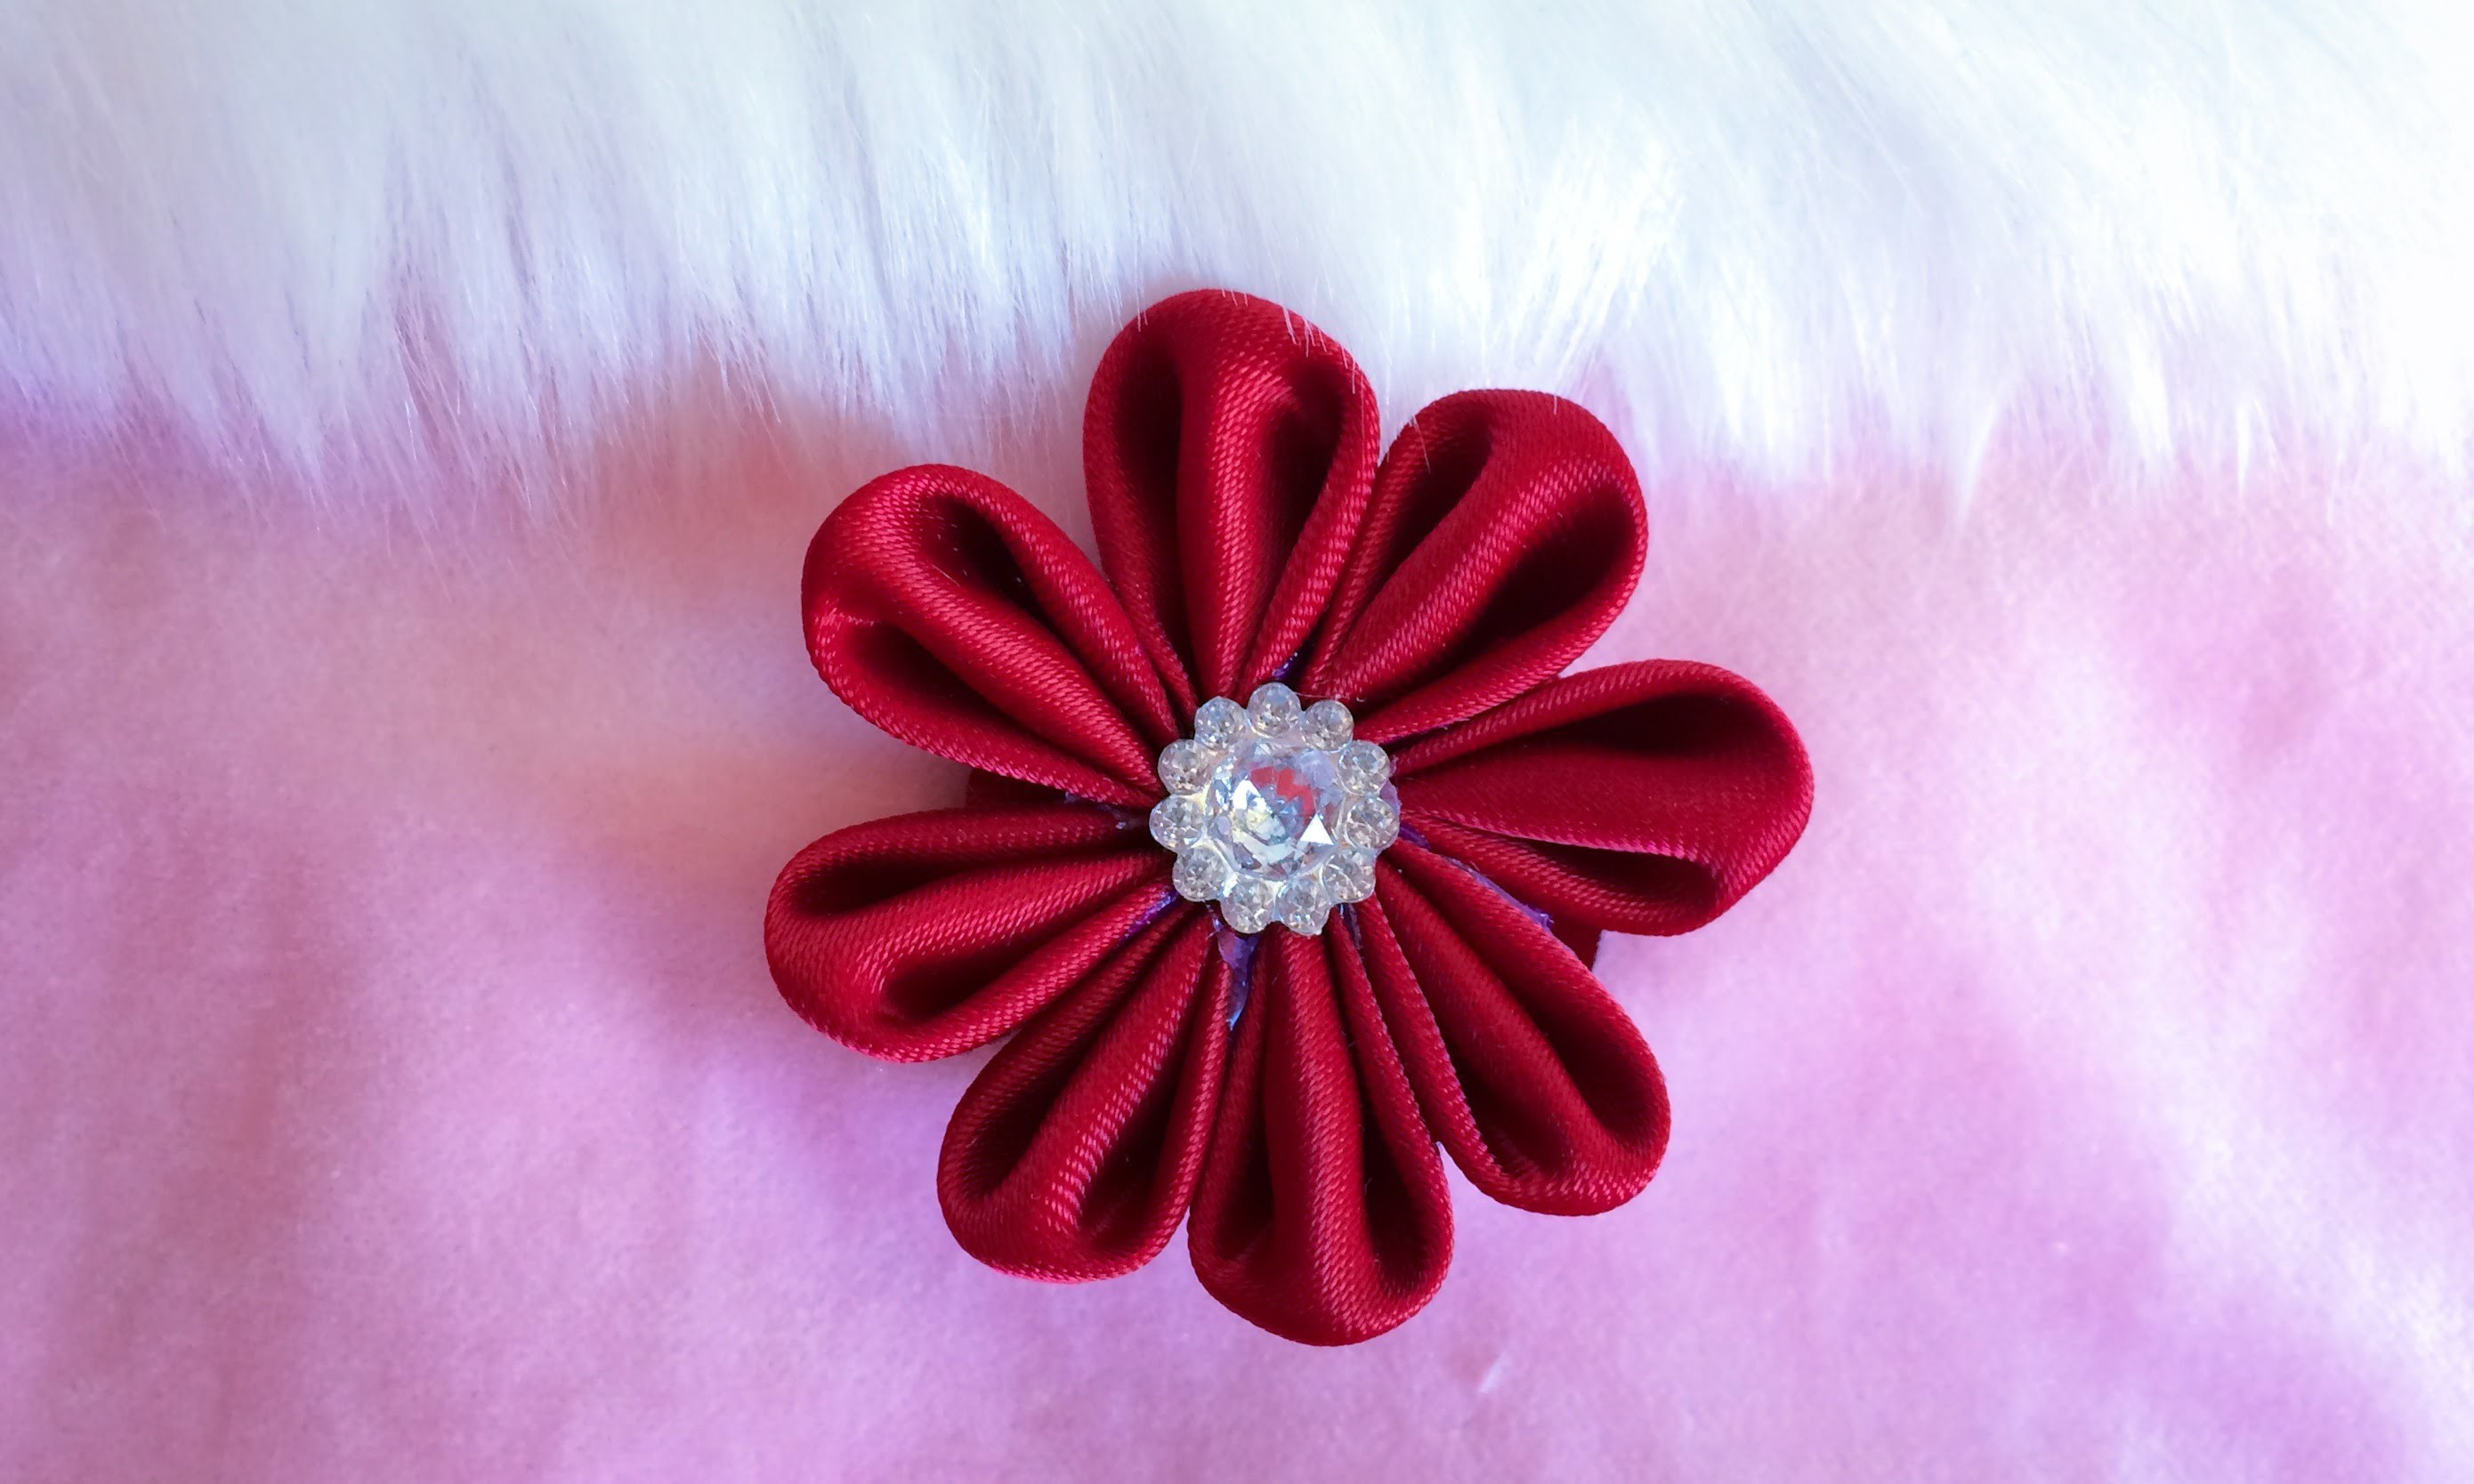 DIY: How to make a Kanzashi ribbon flower